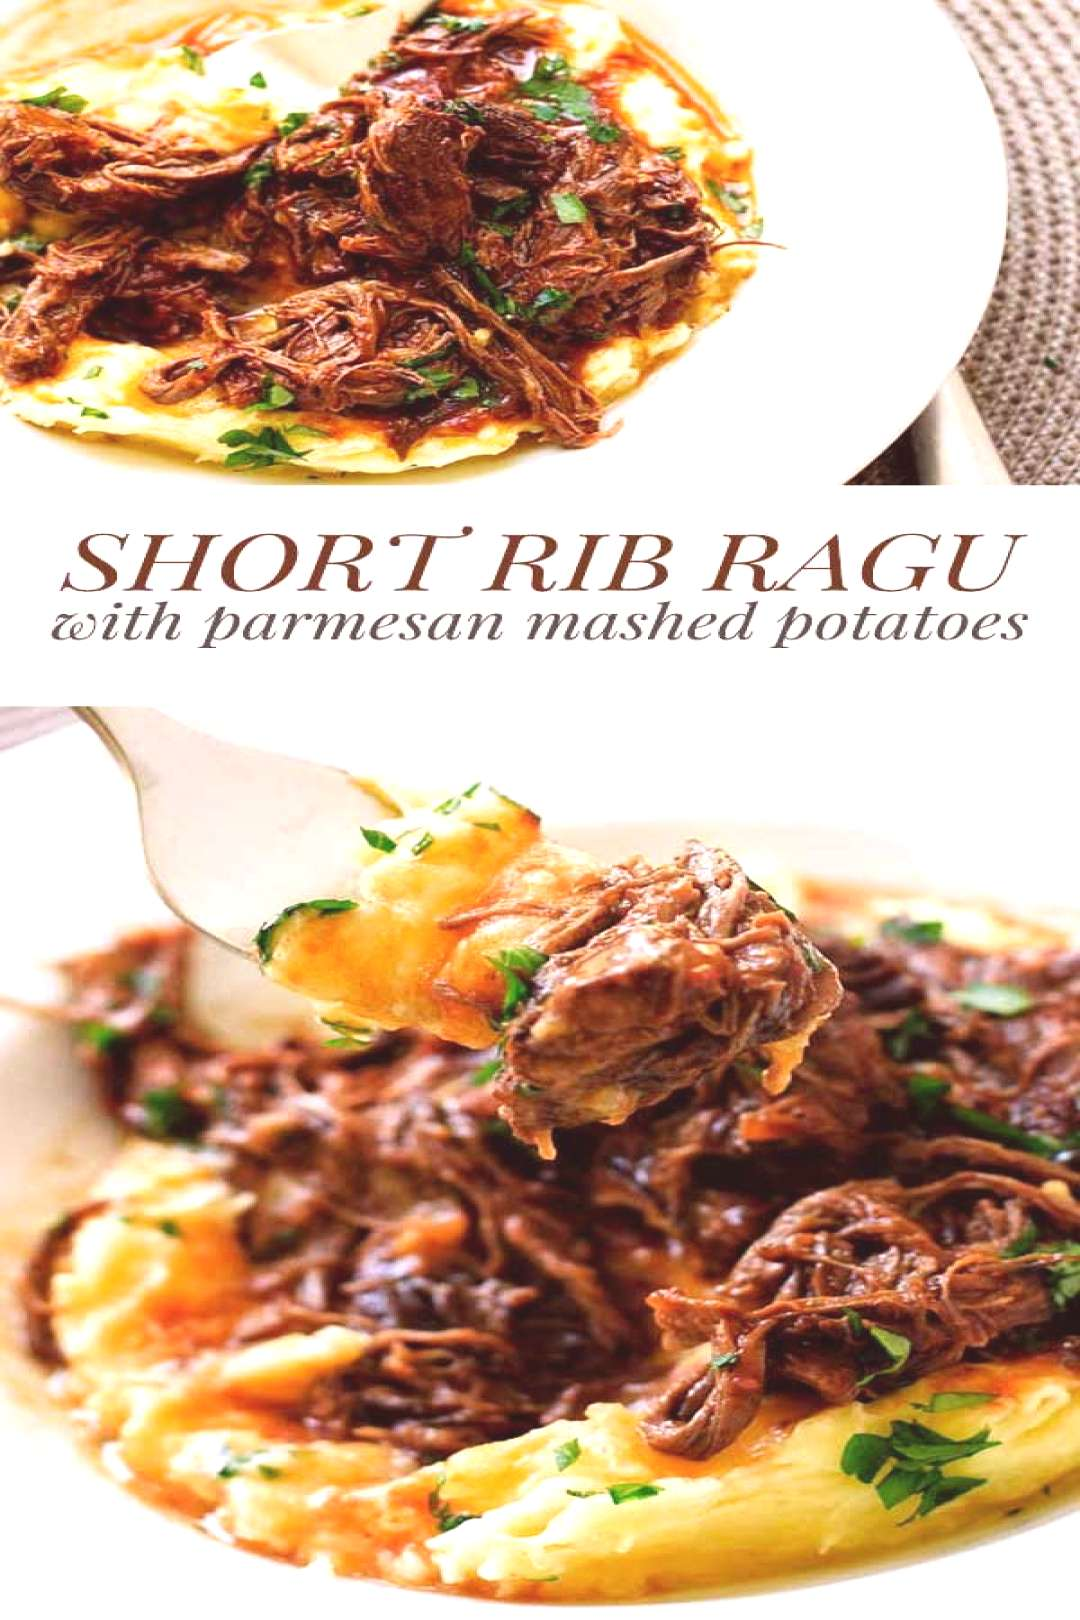 Slow-Cooked Short Rib Ragu -  This hearty short rib ragu is the ultimate comfort food! It's rich